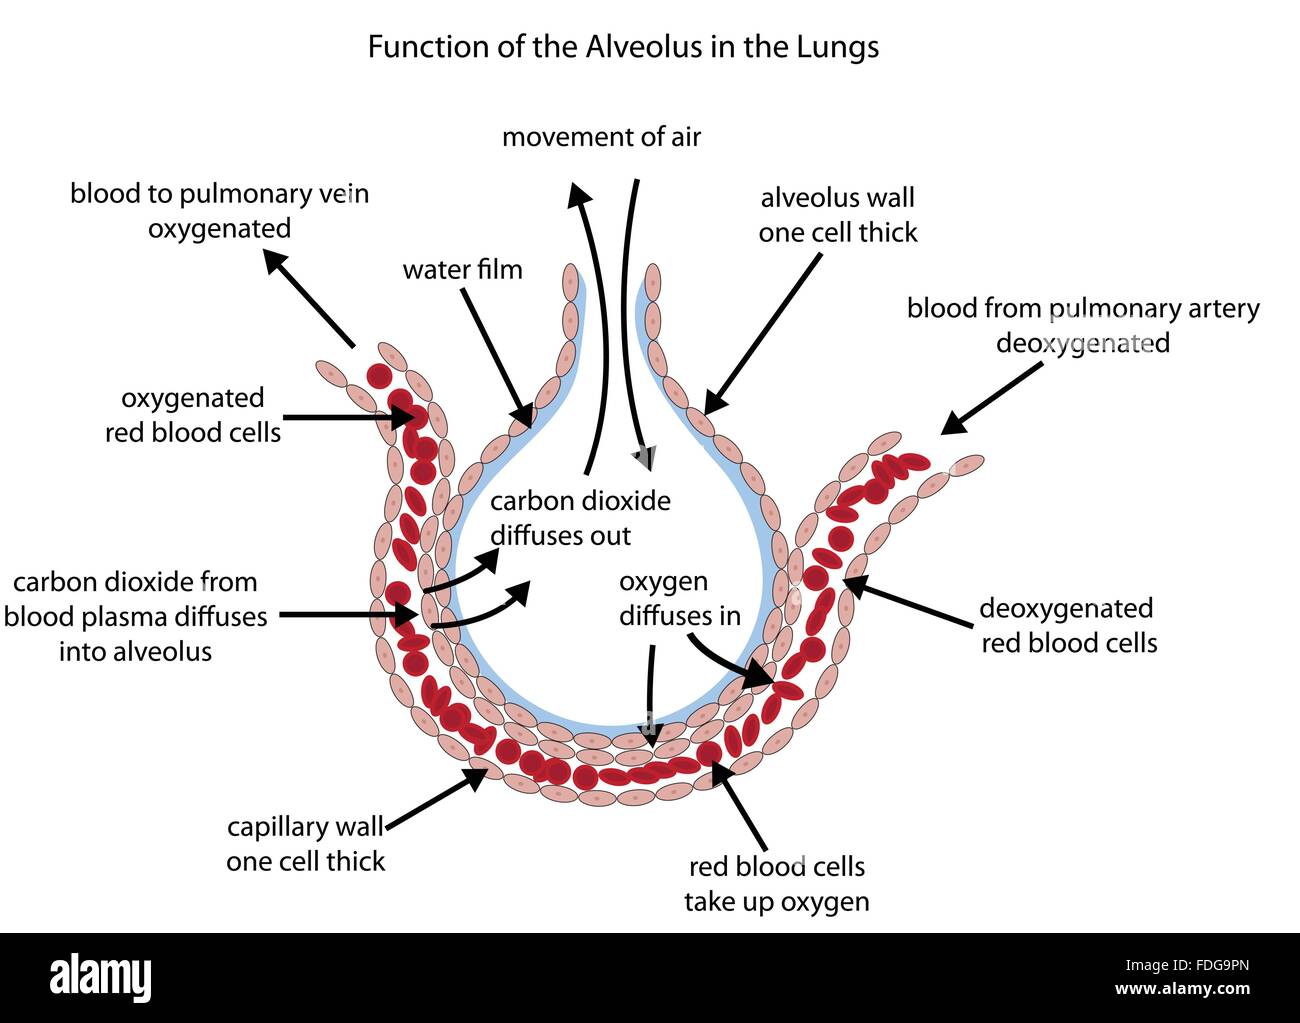 Fully labelled diagram of the alveolus in the lungs showing ... on costal surface of lung, lung nodules, lung drawing, mediastinal surface of lung, clara cell, lung lobes, lung infection, conducting zone, lung model, respiratory bronchiole, bronchopulmonary segment, lung structure, lung hilum, base of lung, borders of lung, apex of lung, alveolar duct, horizontal fissure of right lung, lingula of left lung, lung cartoon, lung cross section, lung function, lung health, lung segments, lung apex, lung animation, lung disease, root of the lung, oblique fissure, lung force, cardiac notch, lung bleb, terminal bronchiole, hilum of lung, lung tree birds, right lung, lung mri, lung volumes, pulmonary alveolus,